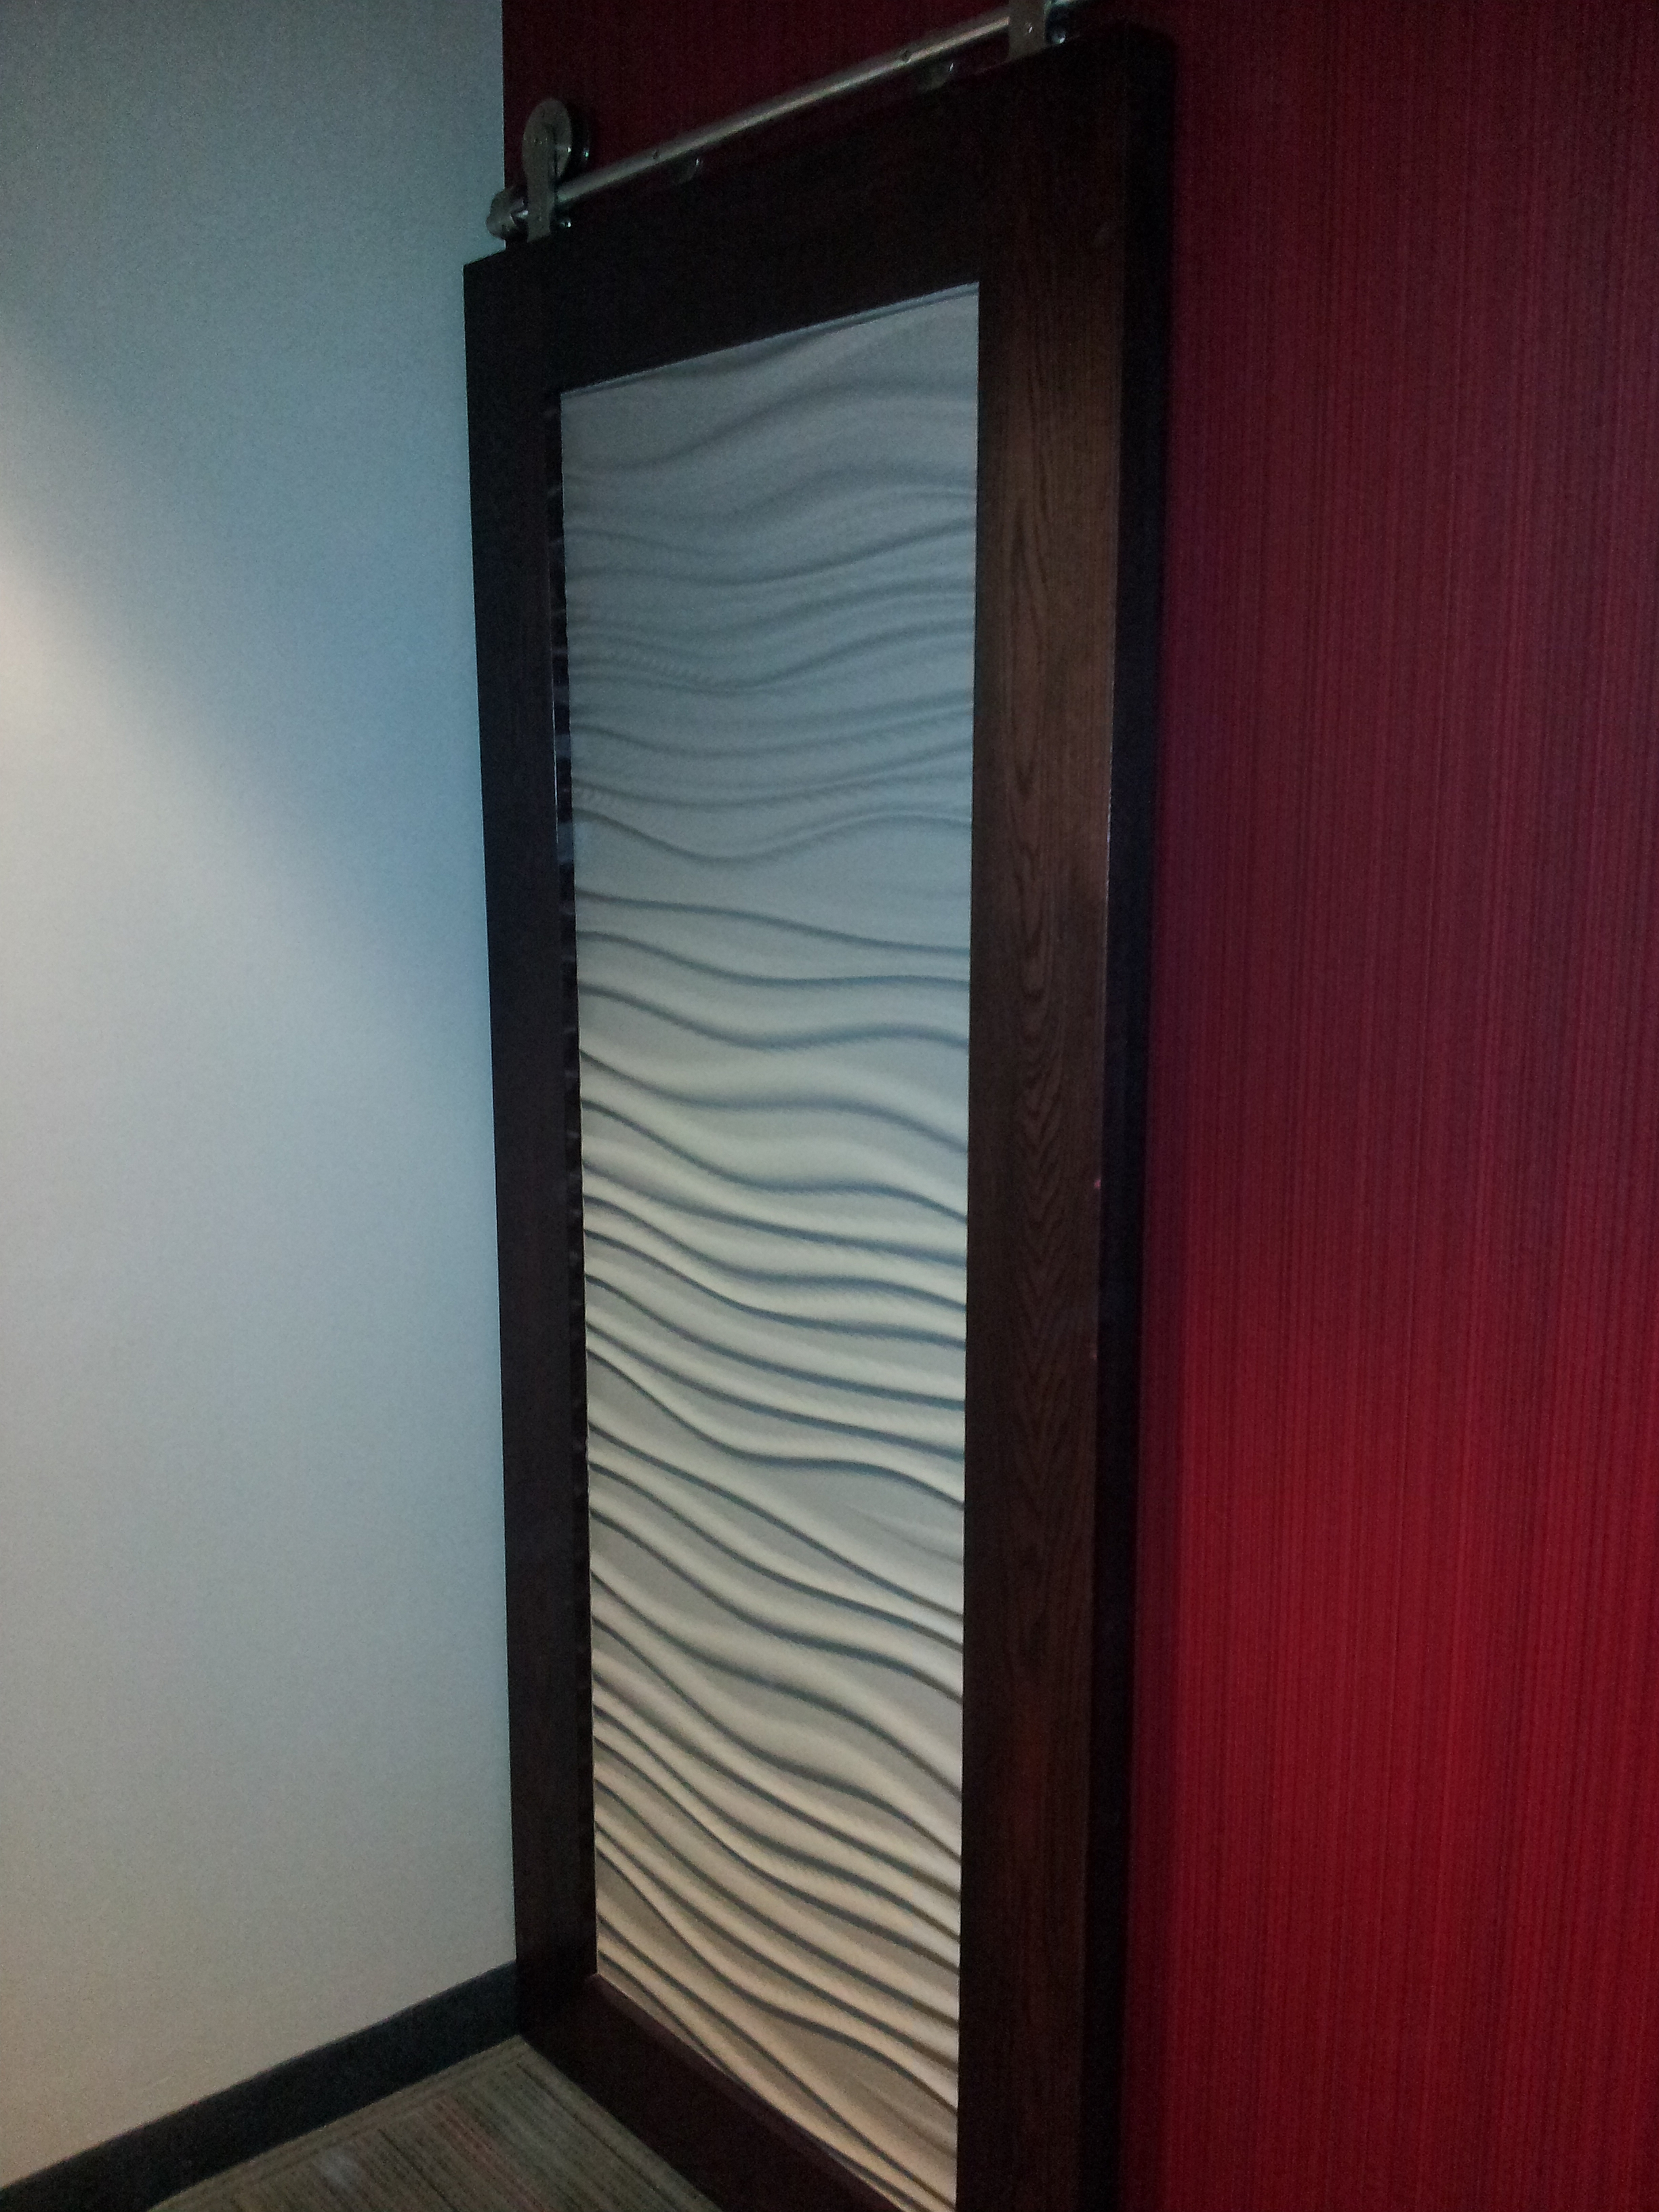 FormArt custom surface mounted door